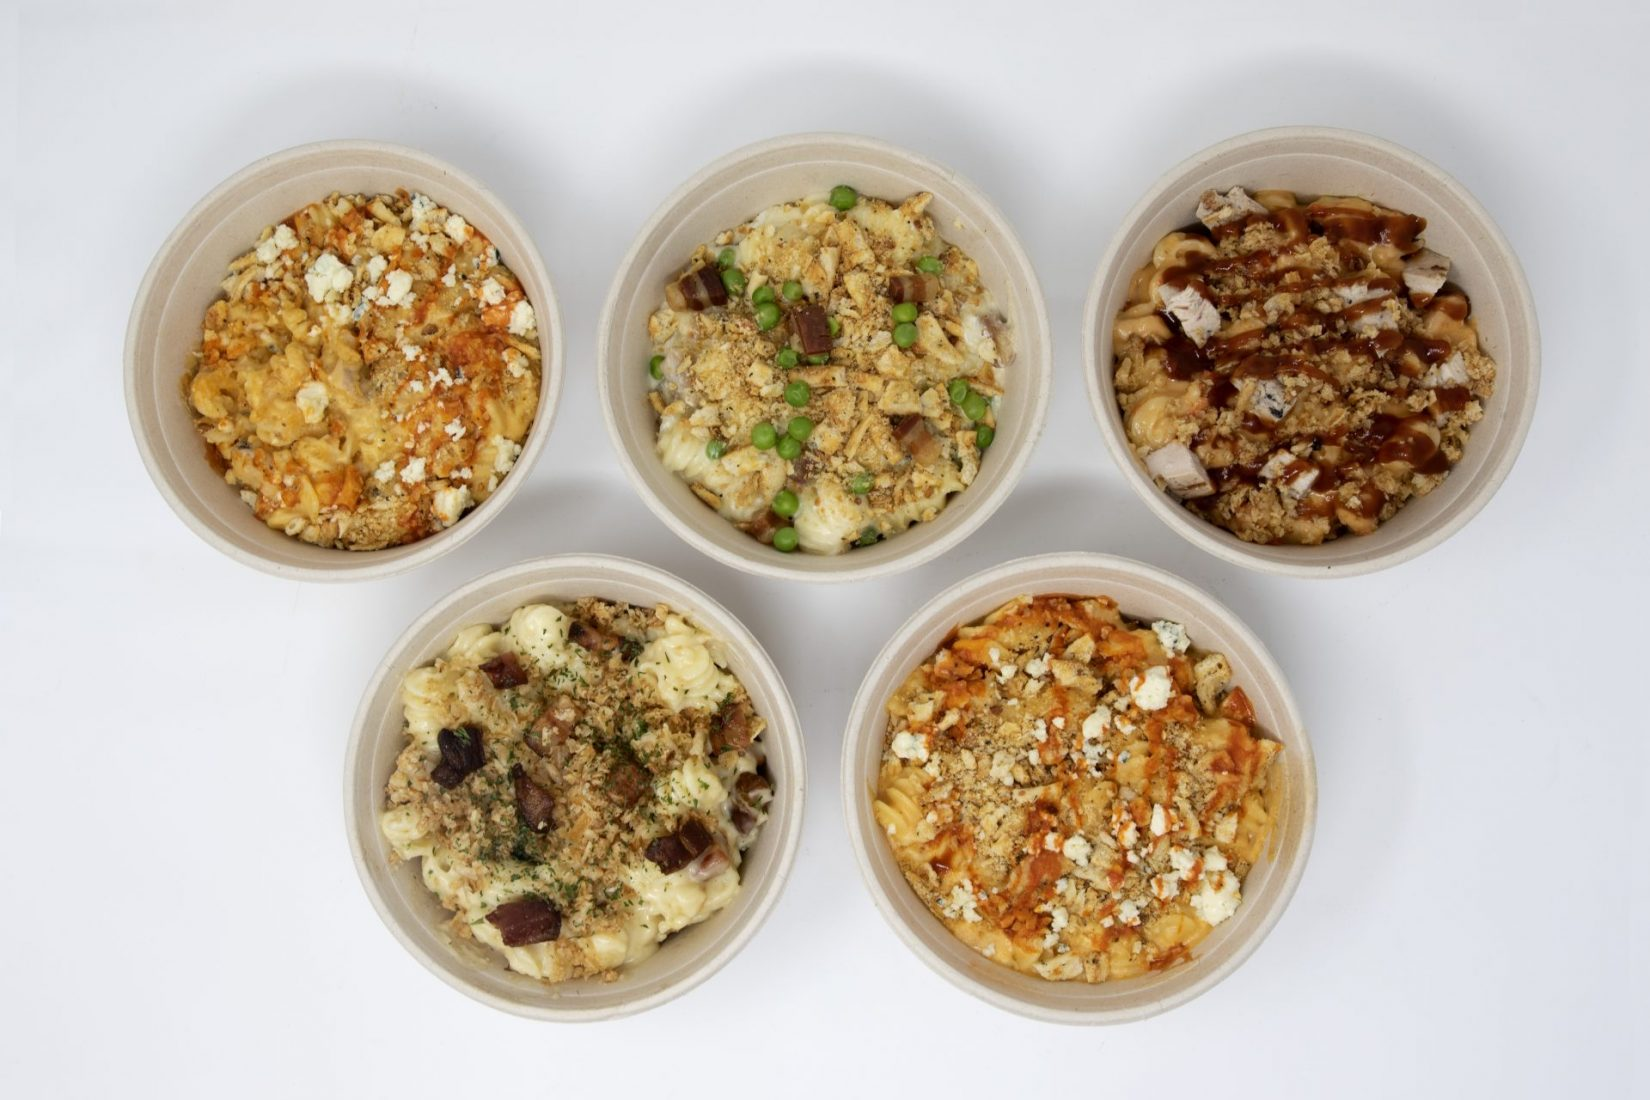 Iconic Murray's Cheese Shop Opens Customizable Mac and Cheese Bar